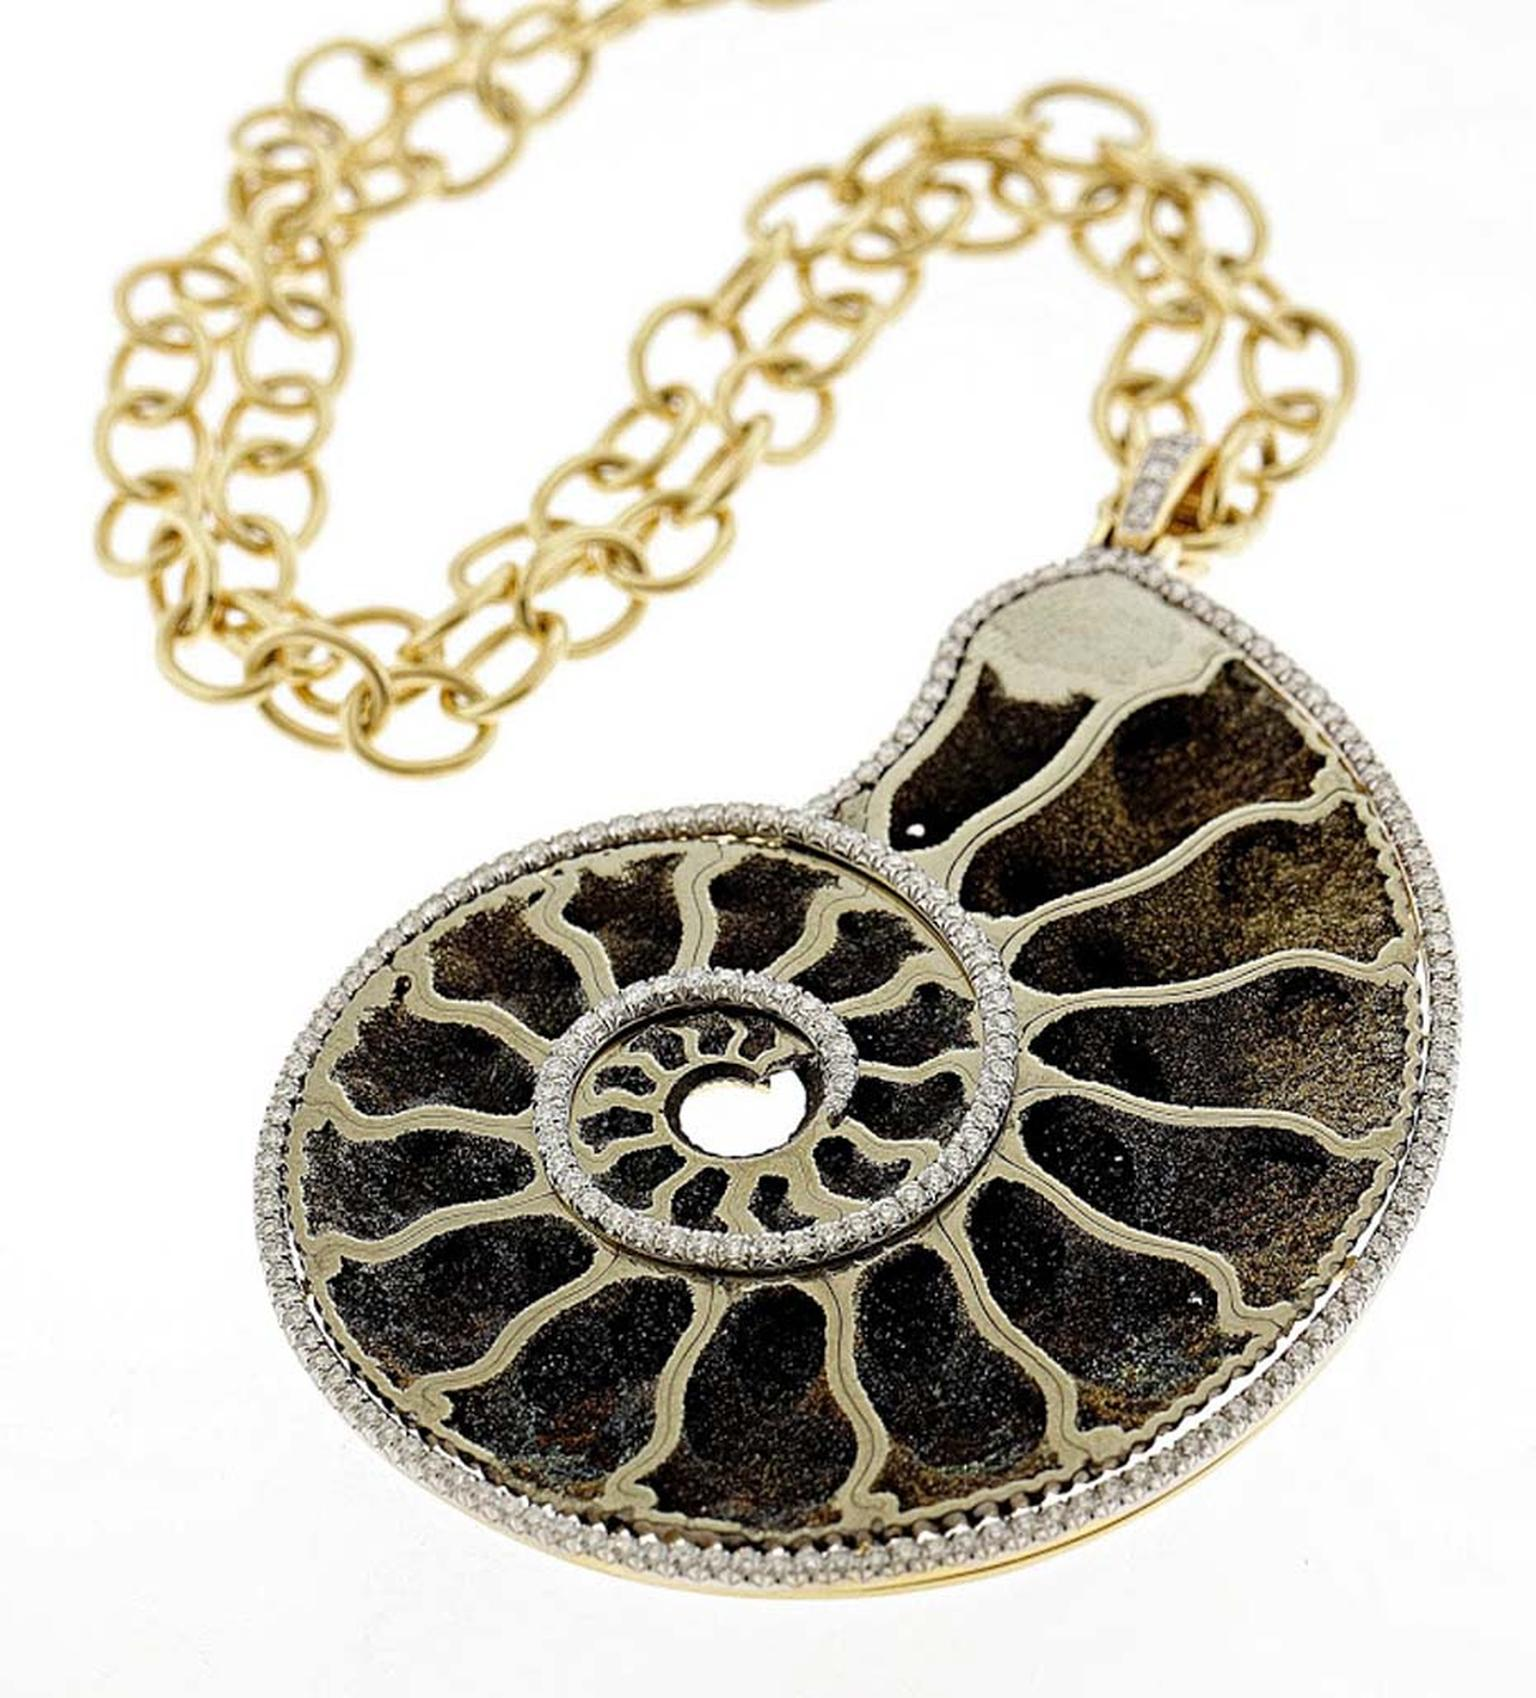 Pamela Huizenga gold pendant with a 111.71ct ammonite fossil in pyrite with an outline of pavé diamonds ($25,000).